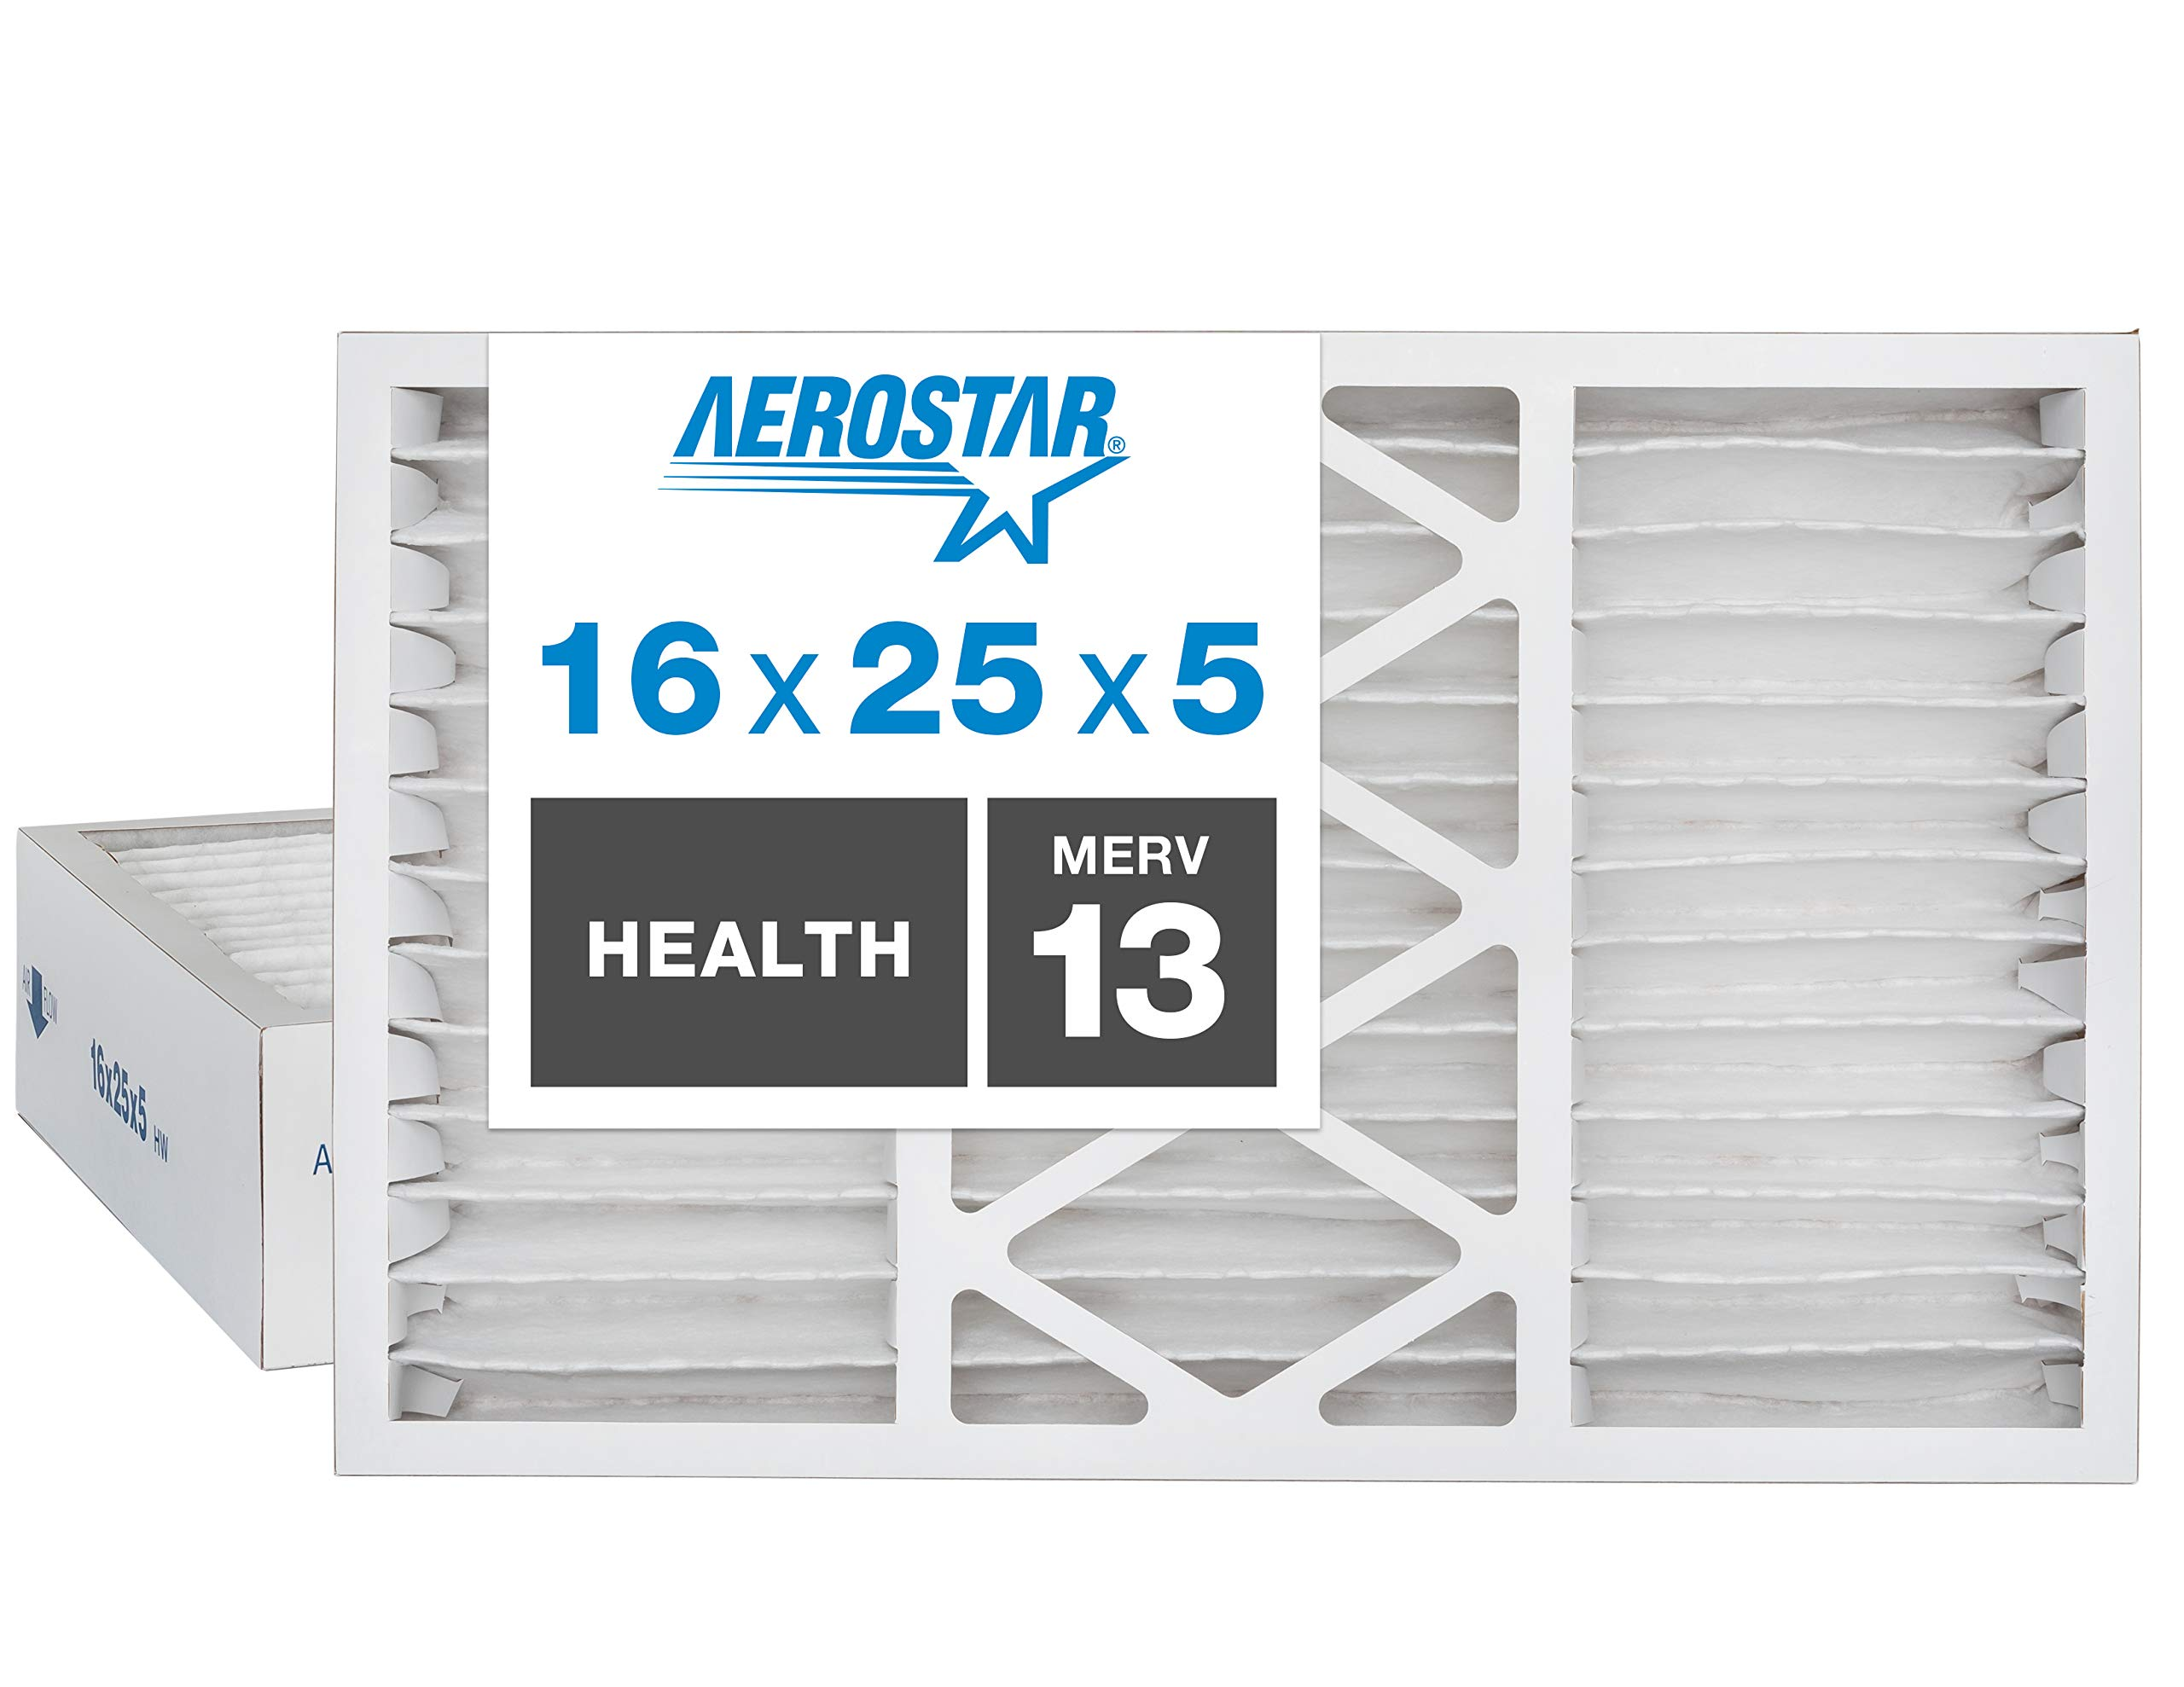 """Aerostar Home Max 16x25x5 MERV 13 Honeywell Replacement Pleated Air Filter, Made in the USA, Captures Virus Particles, (Actual Size: 15 7/8"""" x 24 3/4"""" x 4 3/8""""), 2-Pack,White"""